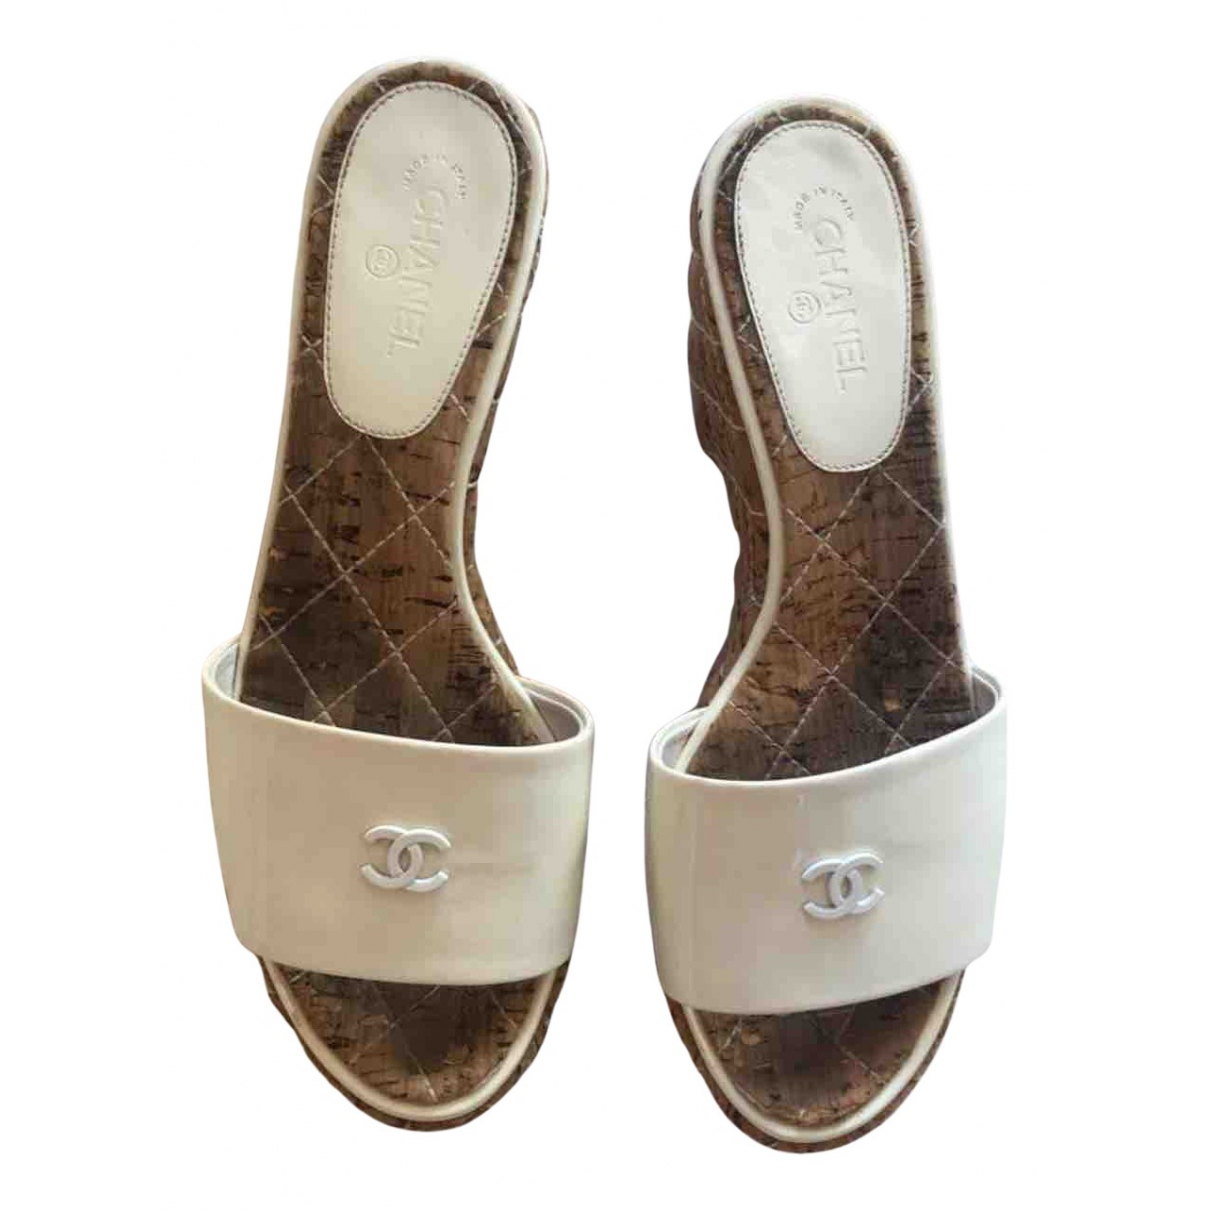 Chanel N White Patent leather Sandals for Women 37 EU